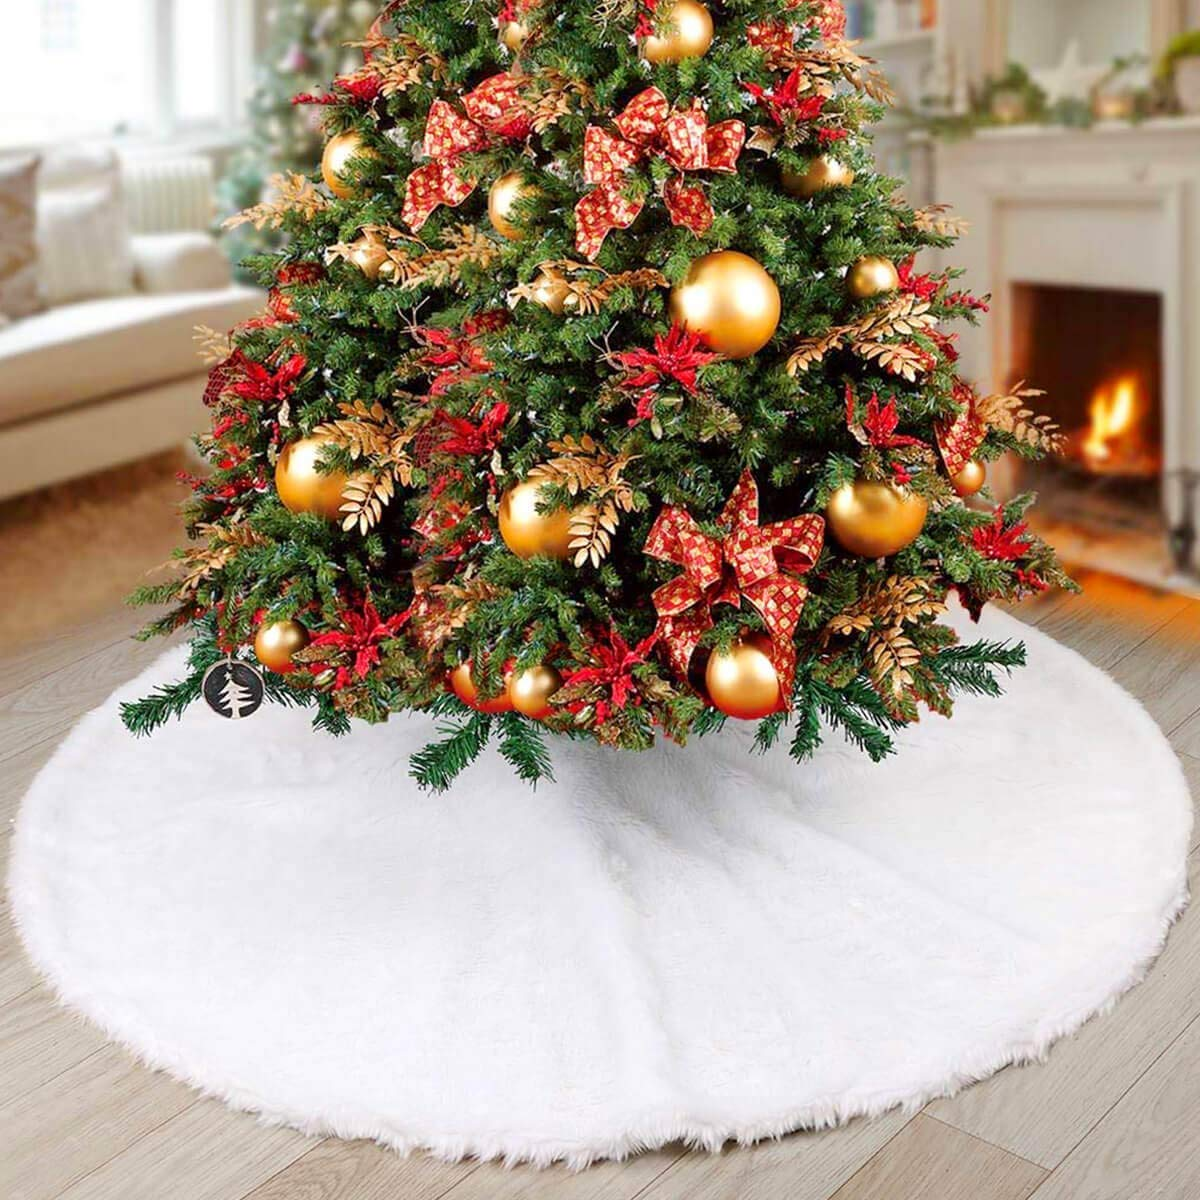 NTMY Christmas Tree Skirts White Faux fur Tree Skirts Plush Xmas Year/Party / Home Decoration (31 in / 78cm) AAFGXSP